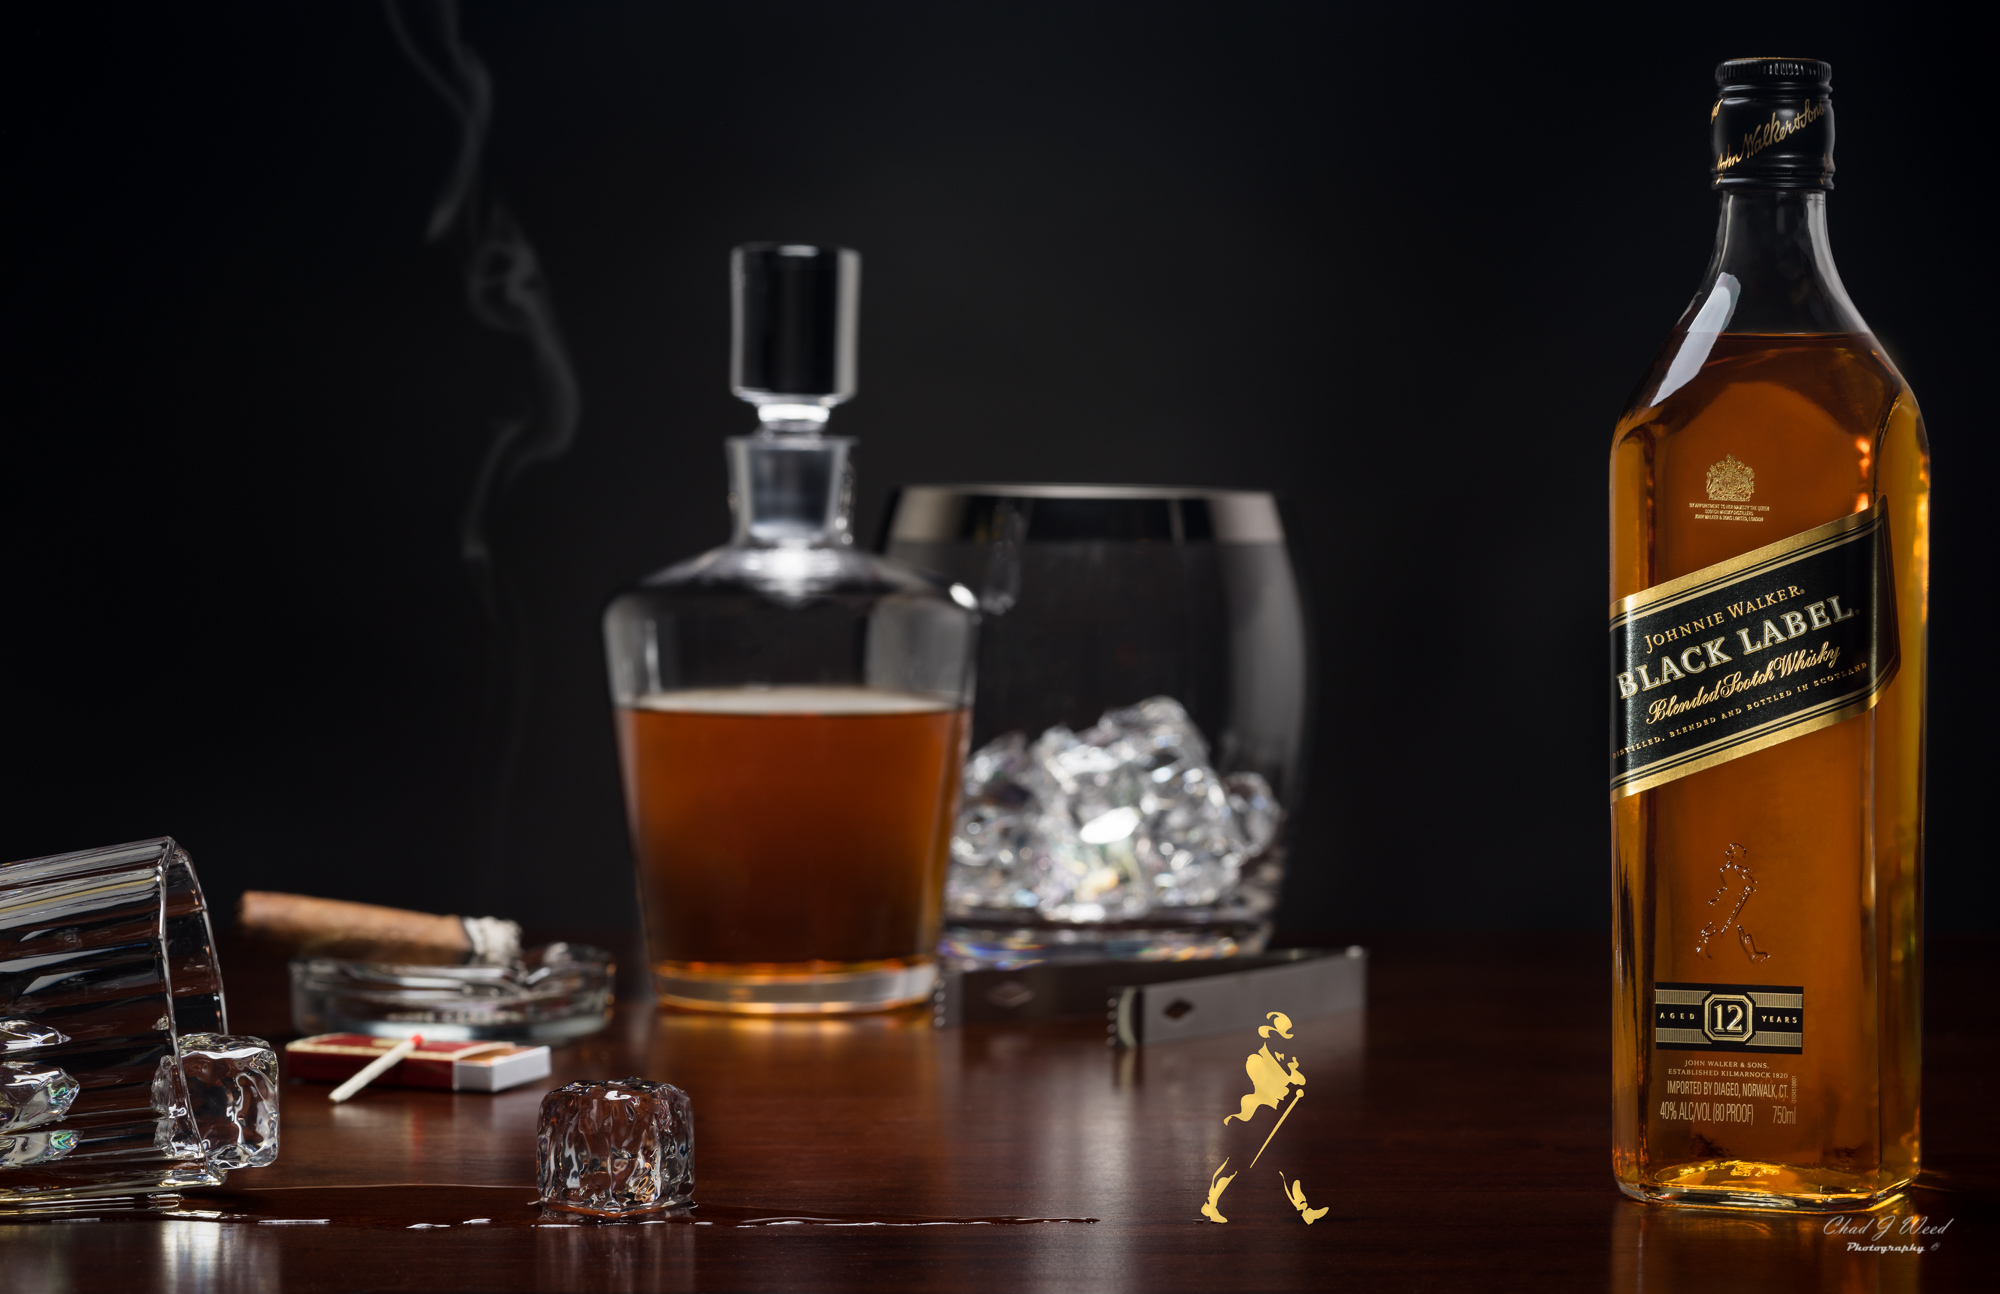 Johnnie Walker Black Label Scotch by Arizona Commercial Beverage Photographer